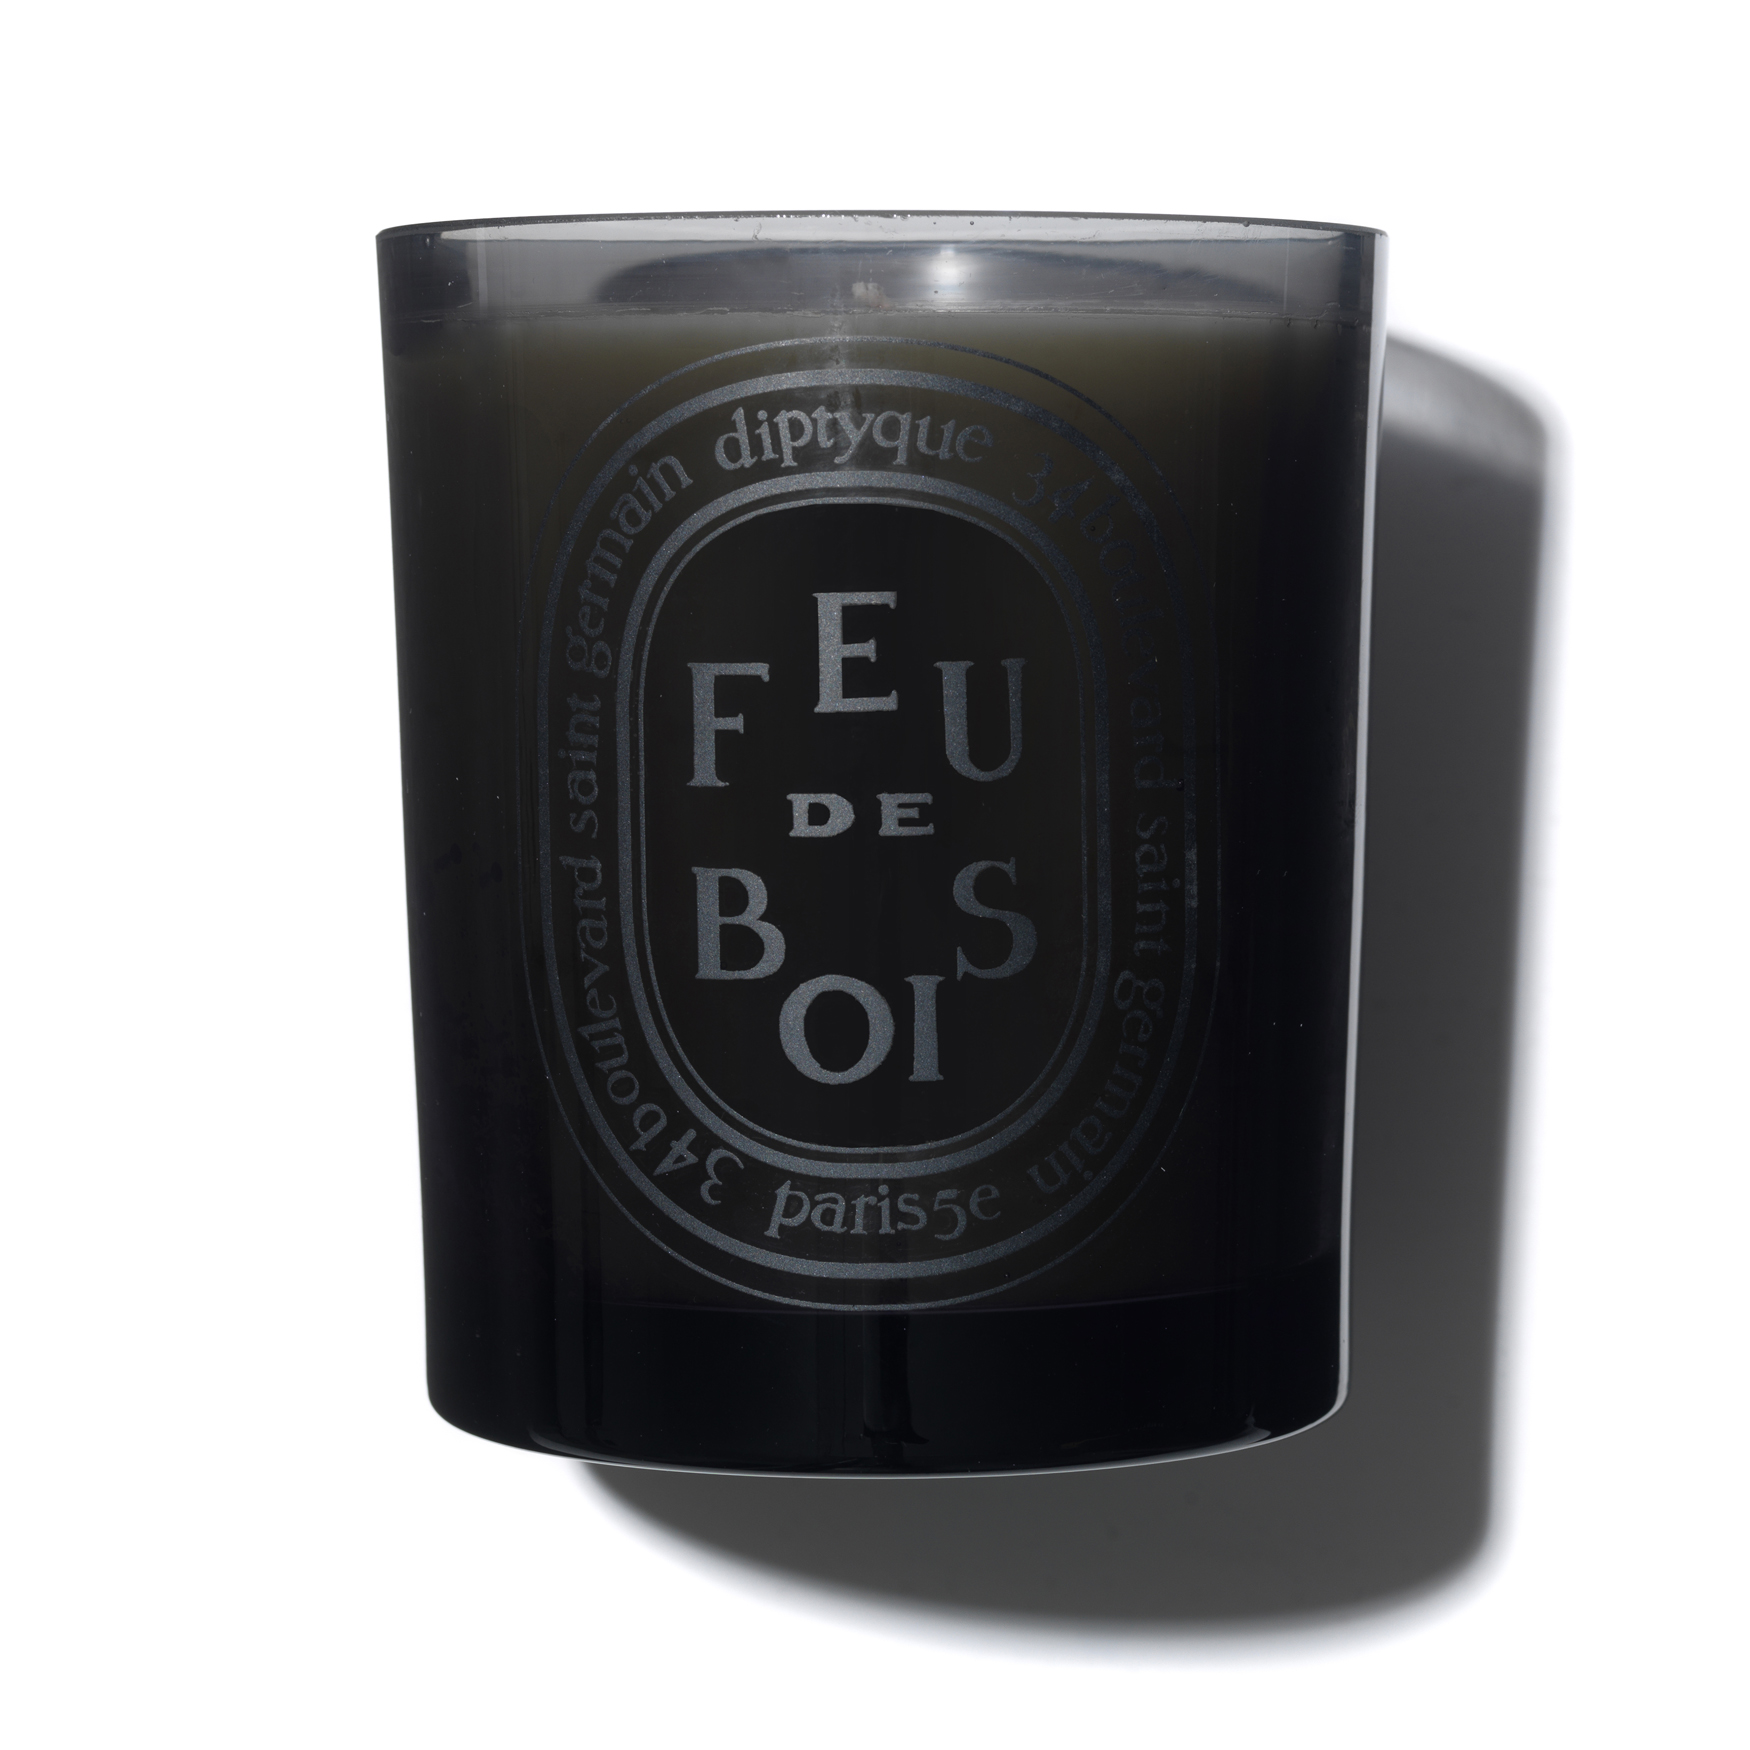 Feu de Bois Coloured Scented Candle, , large